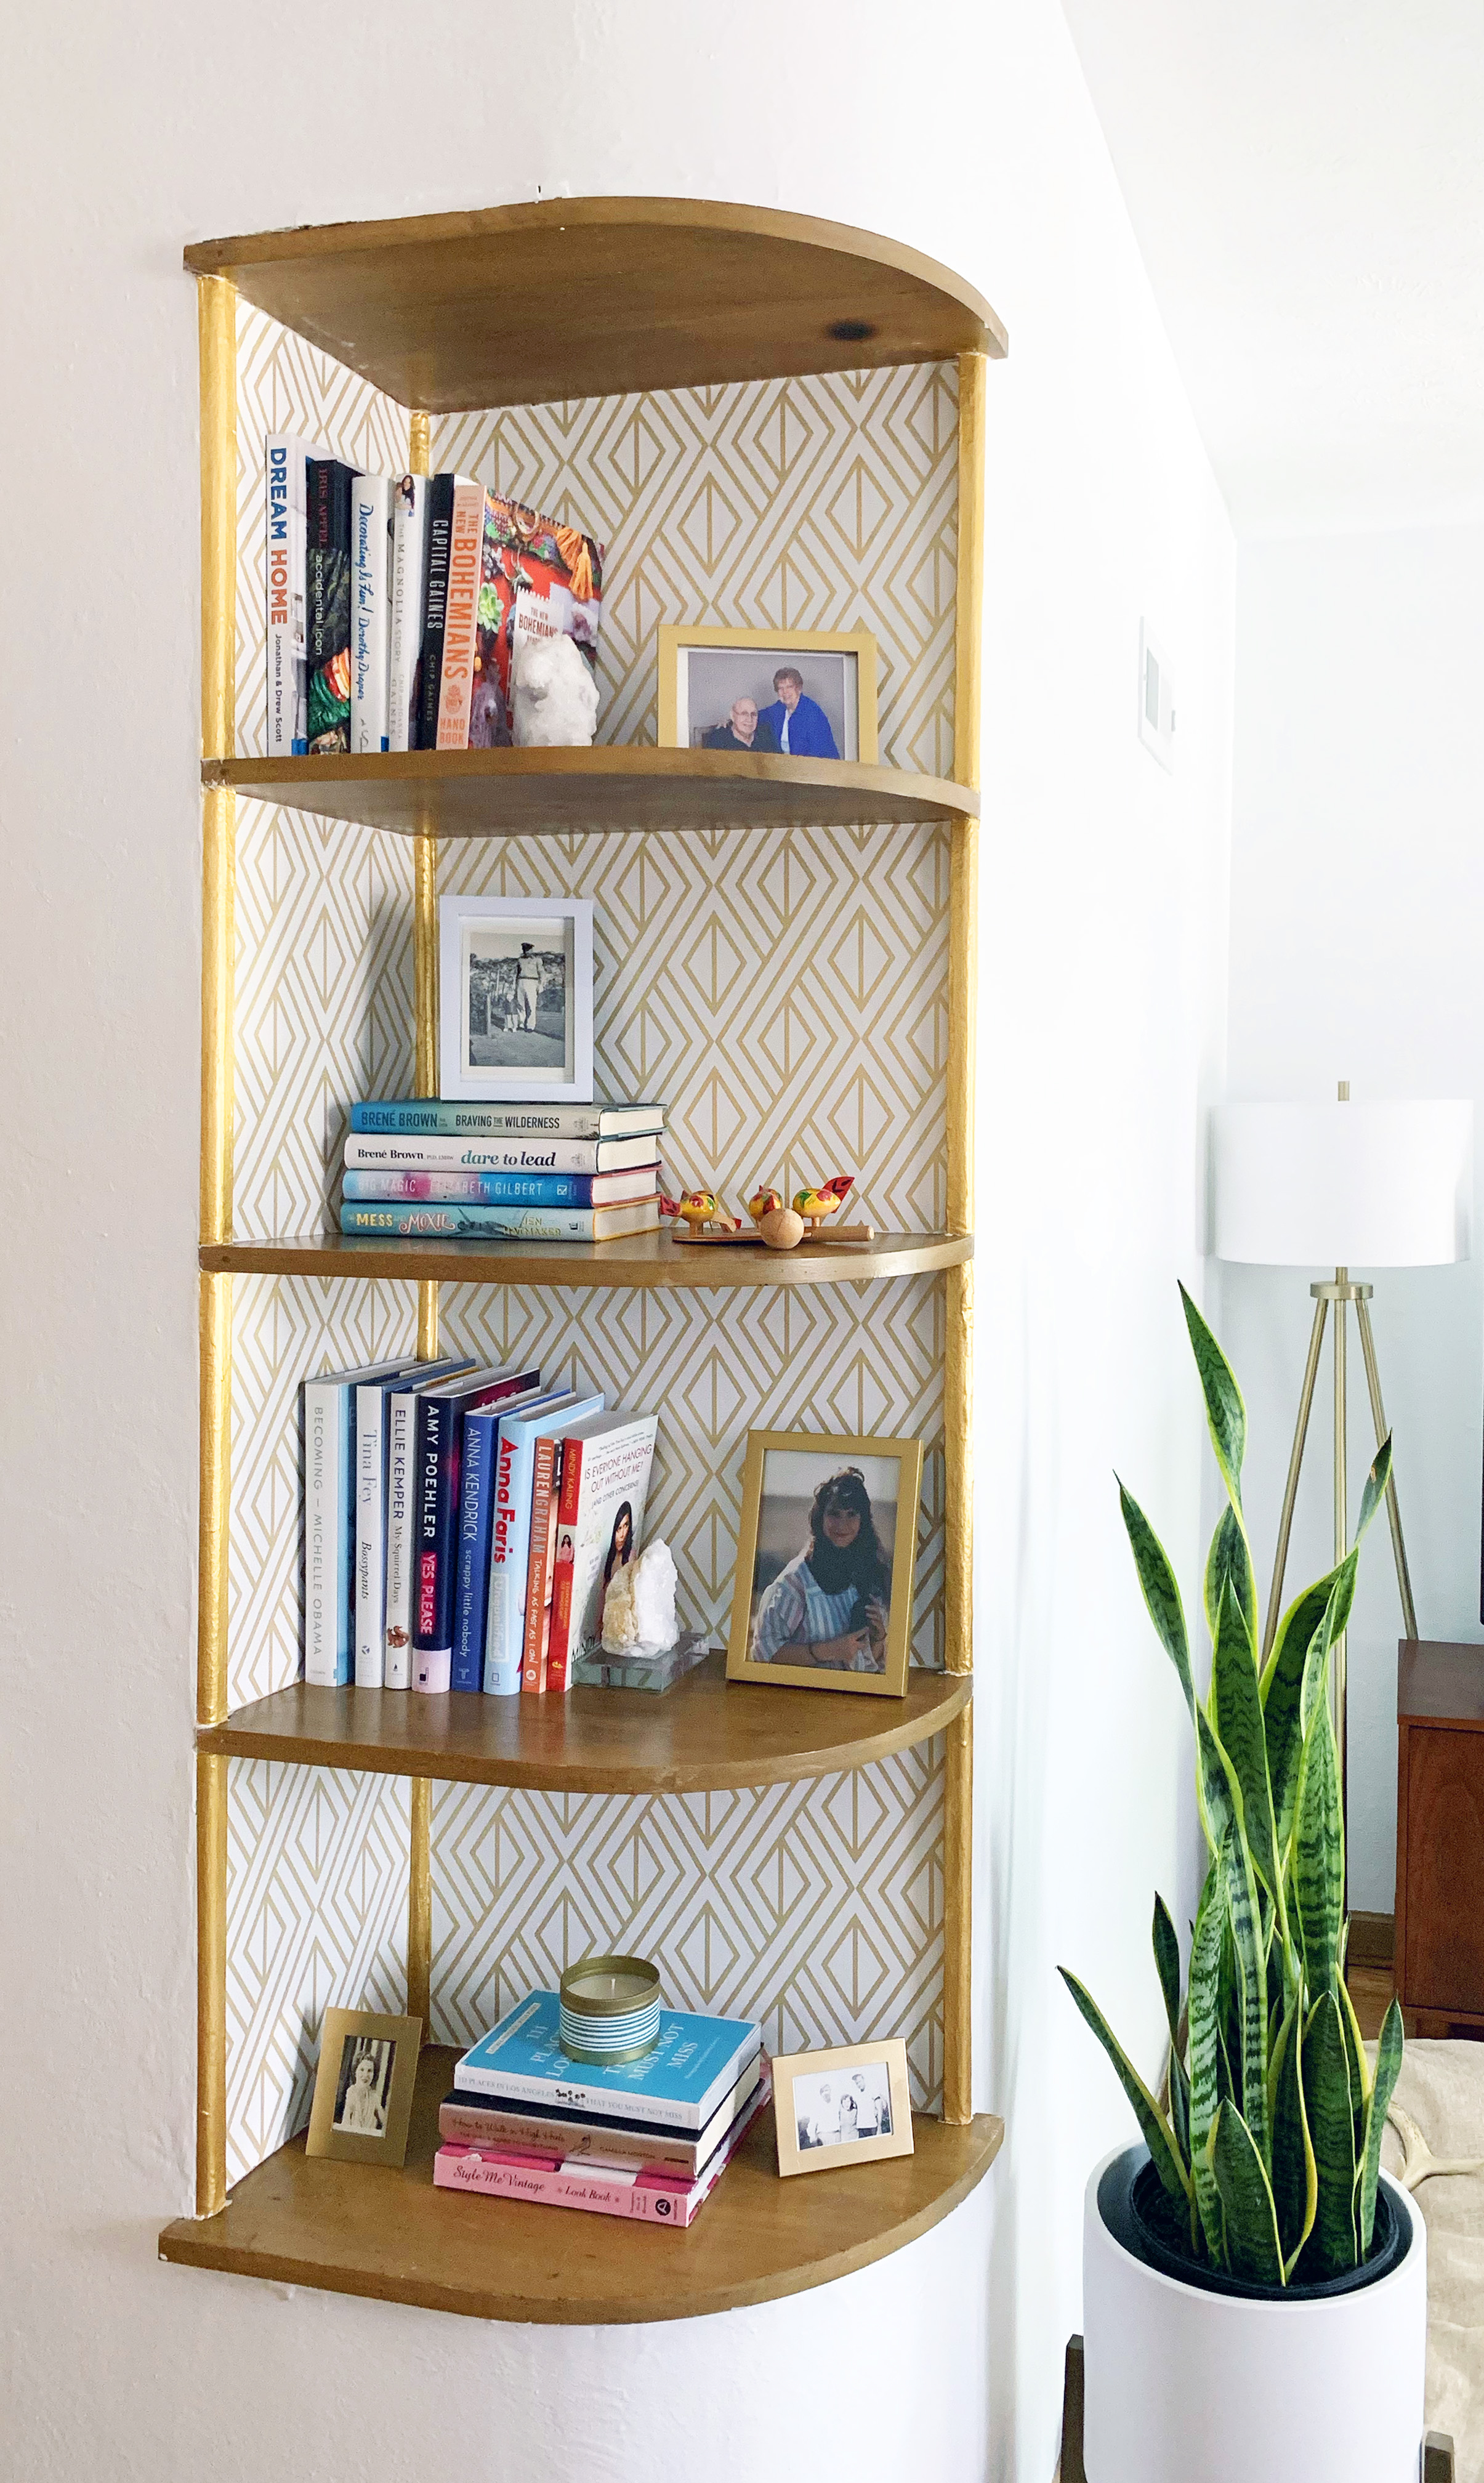 The finished bookshelf adds so much more character to the room!